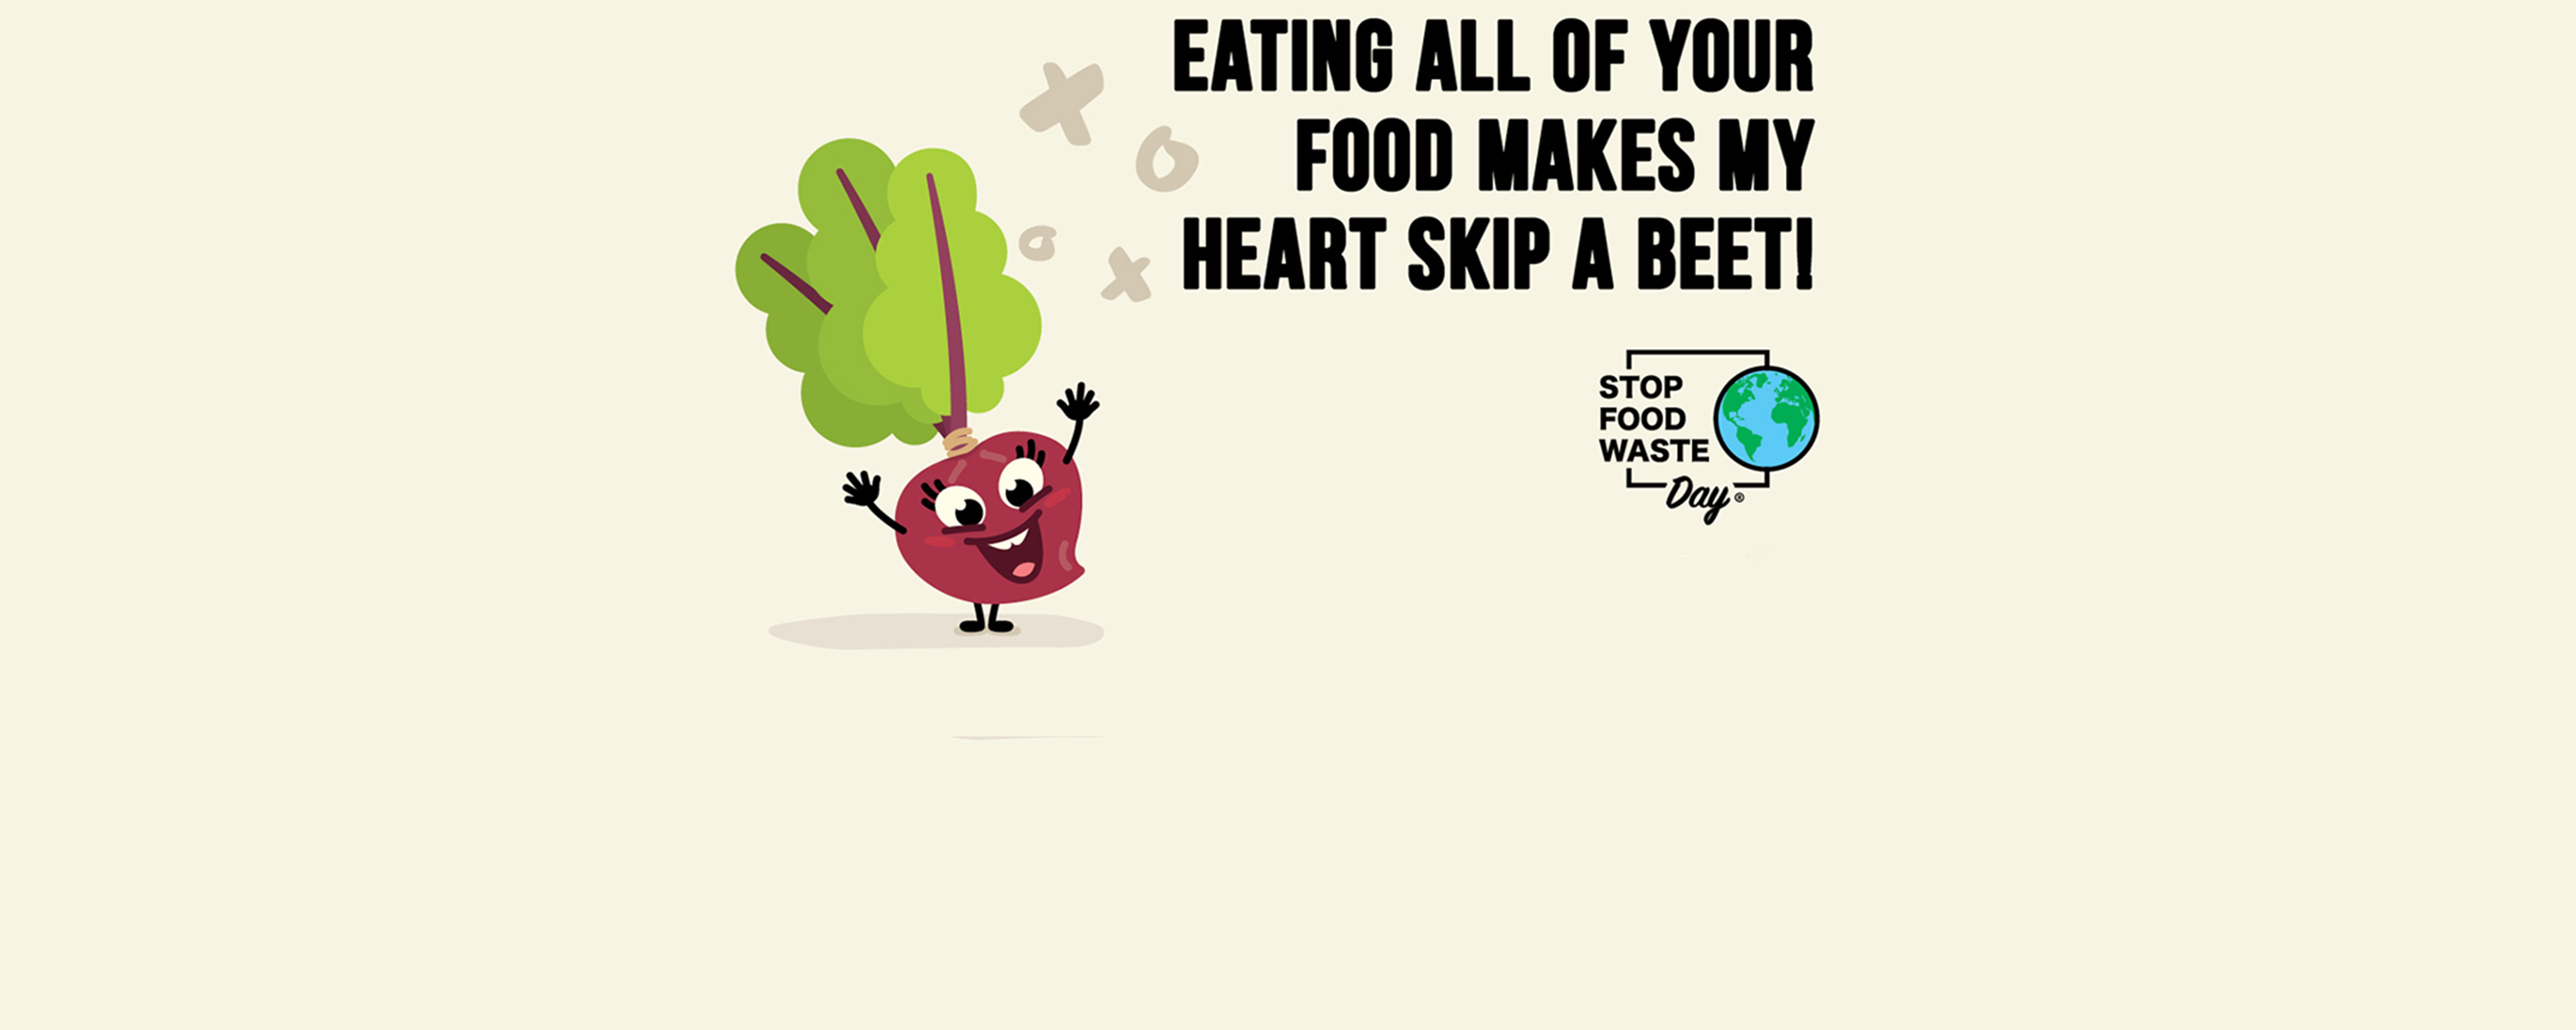 eating all of your food makes my heart skip a beet